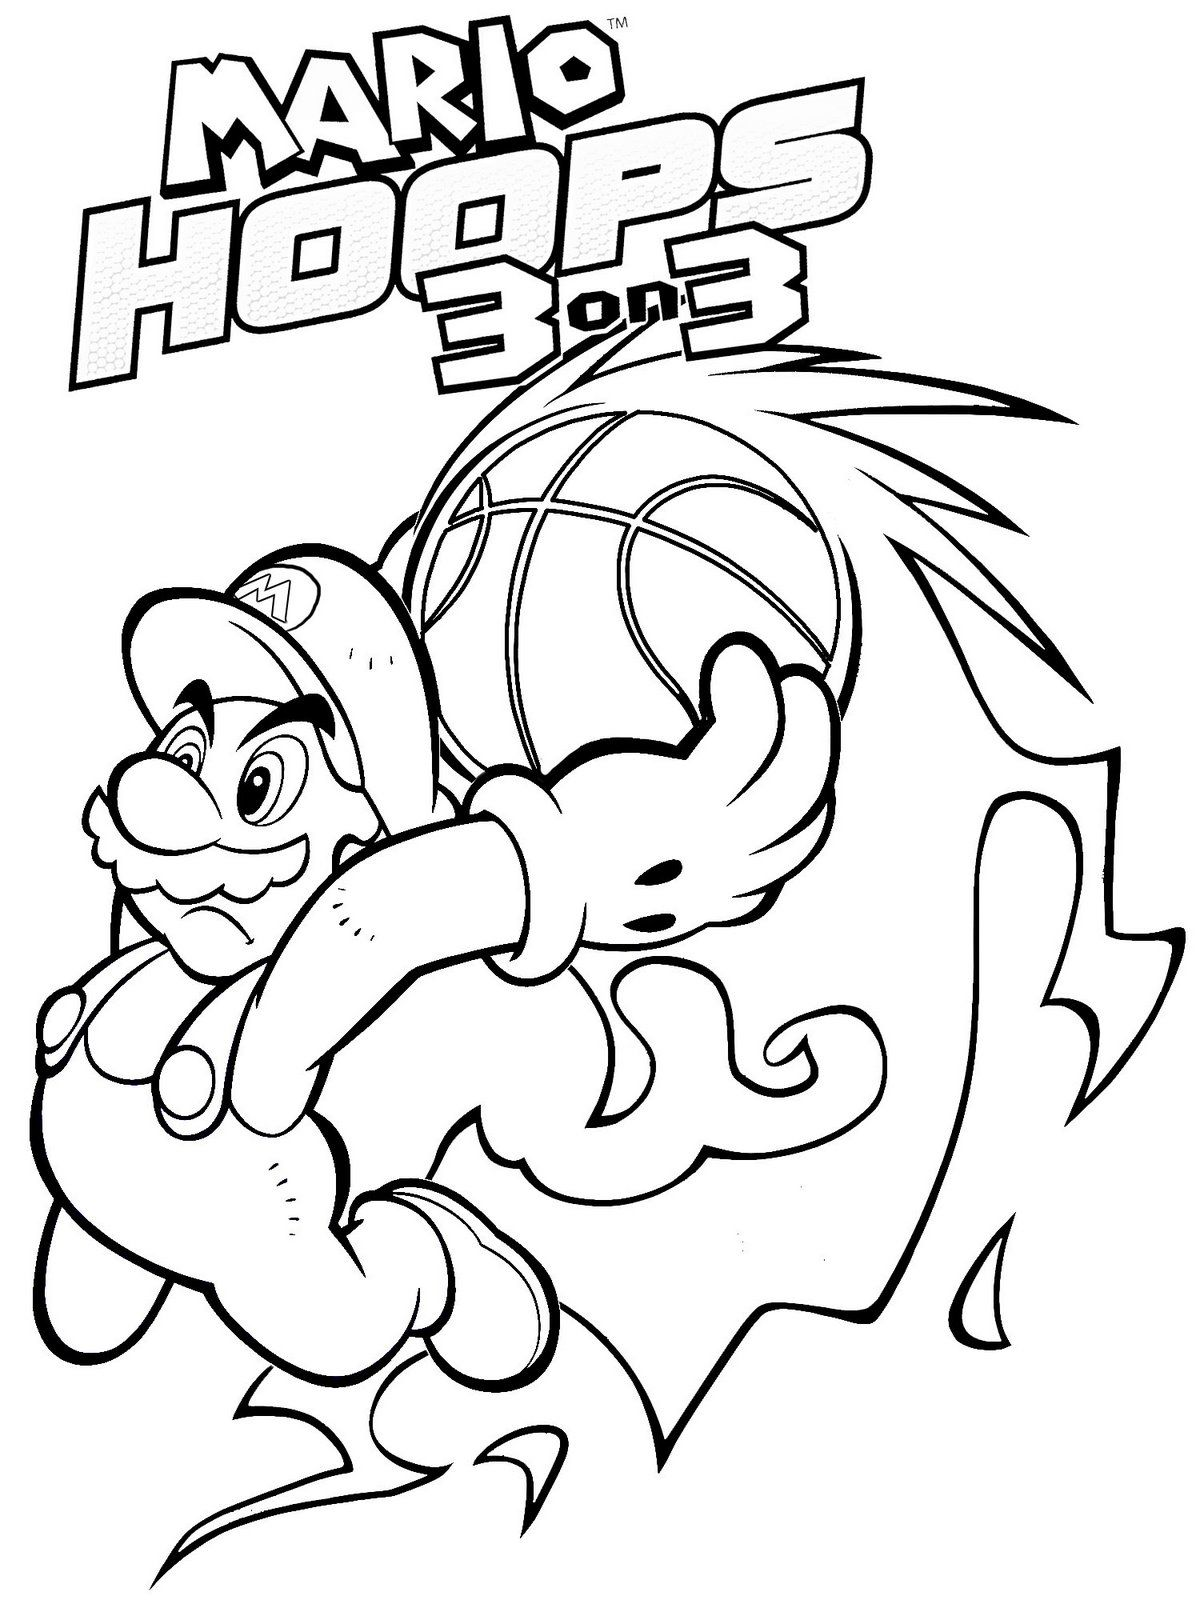 Mario Sports Coloring Pages Portraits